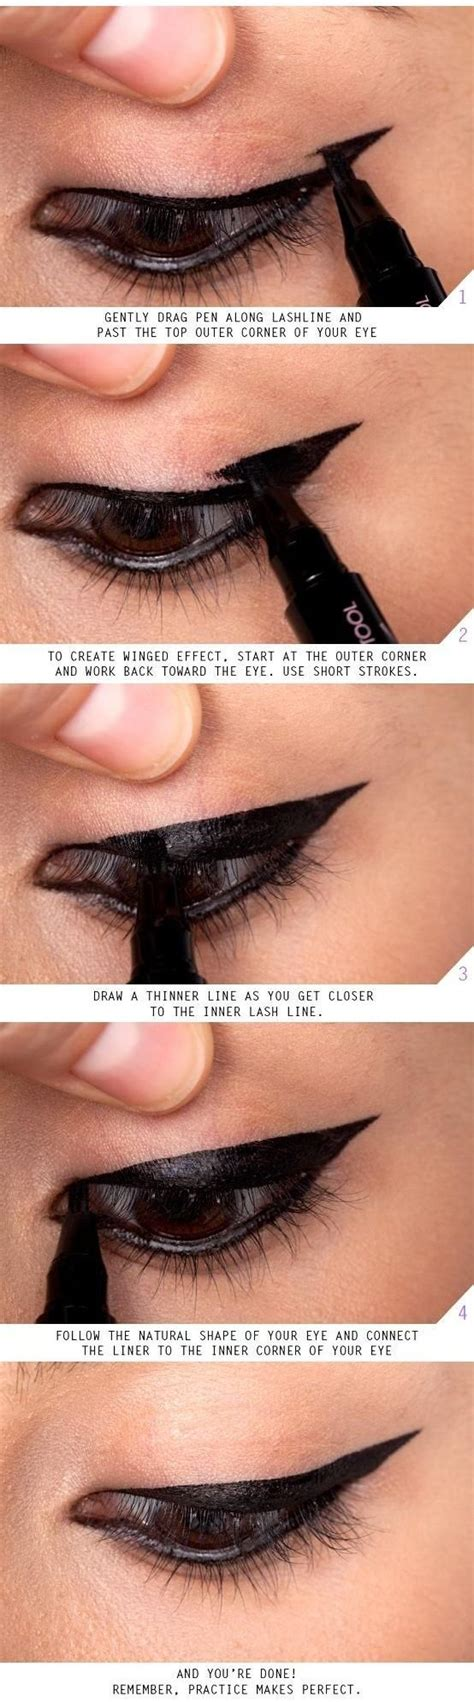 tutorial for top eyeliner vintage triple winged eyeliner tutorial with step by